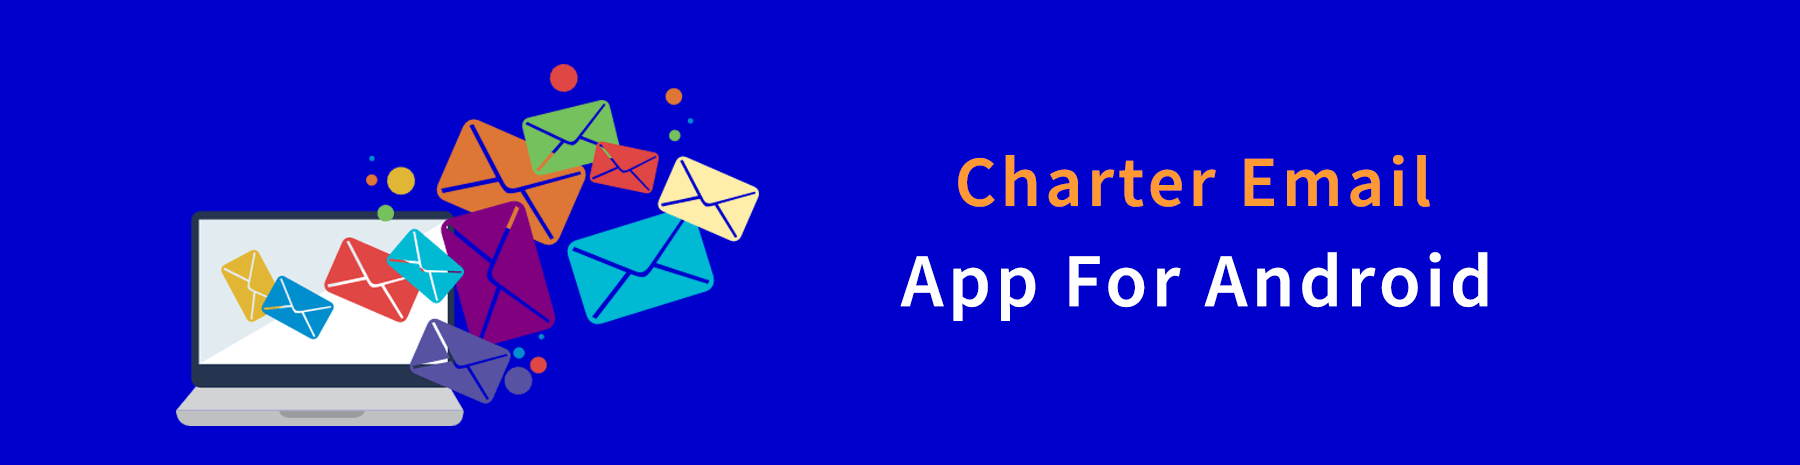 Charter Email App For Android